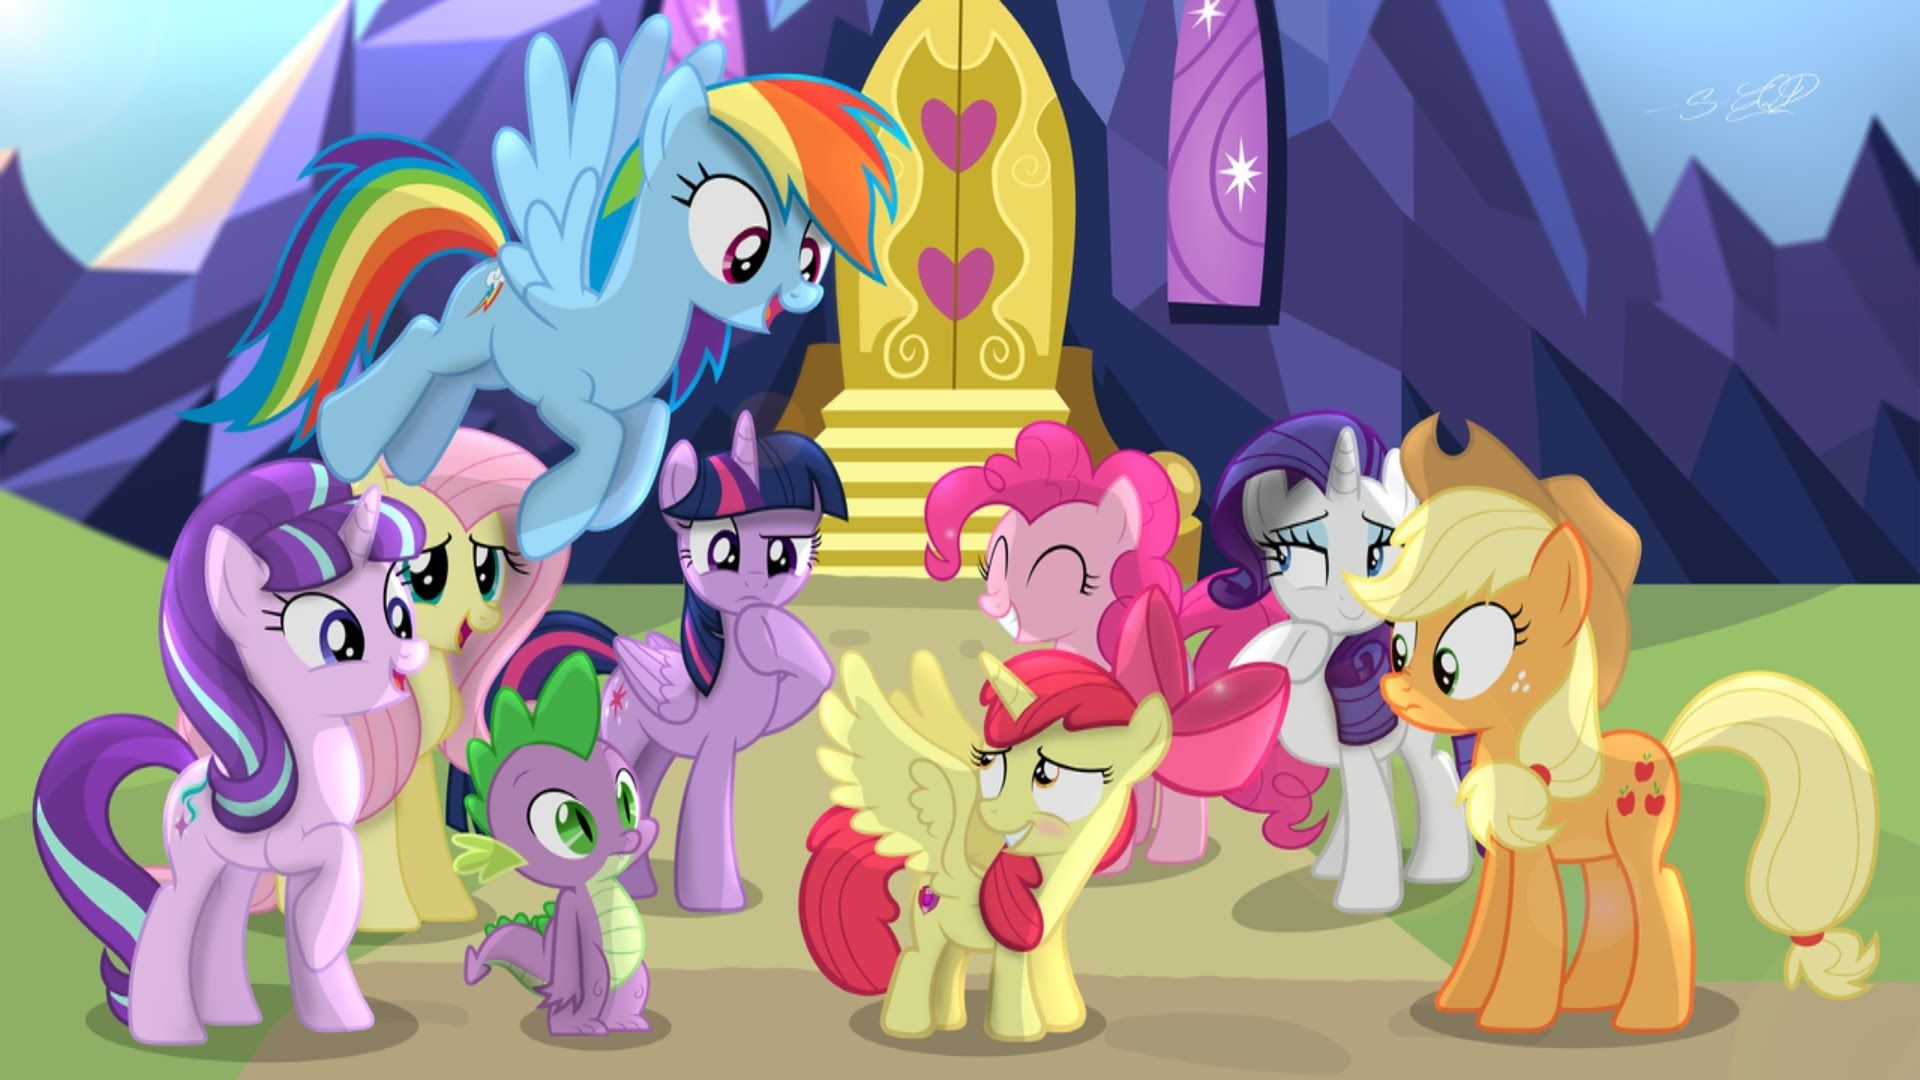 Pin By Whatinblognation On Whatinblognation My Little Pony Characters My Little Pony Movie Pony